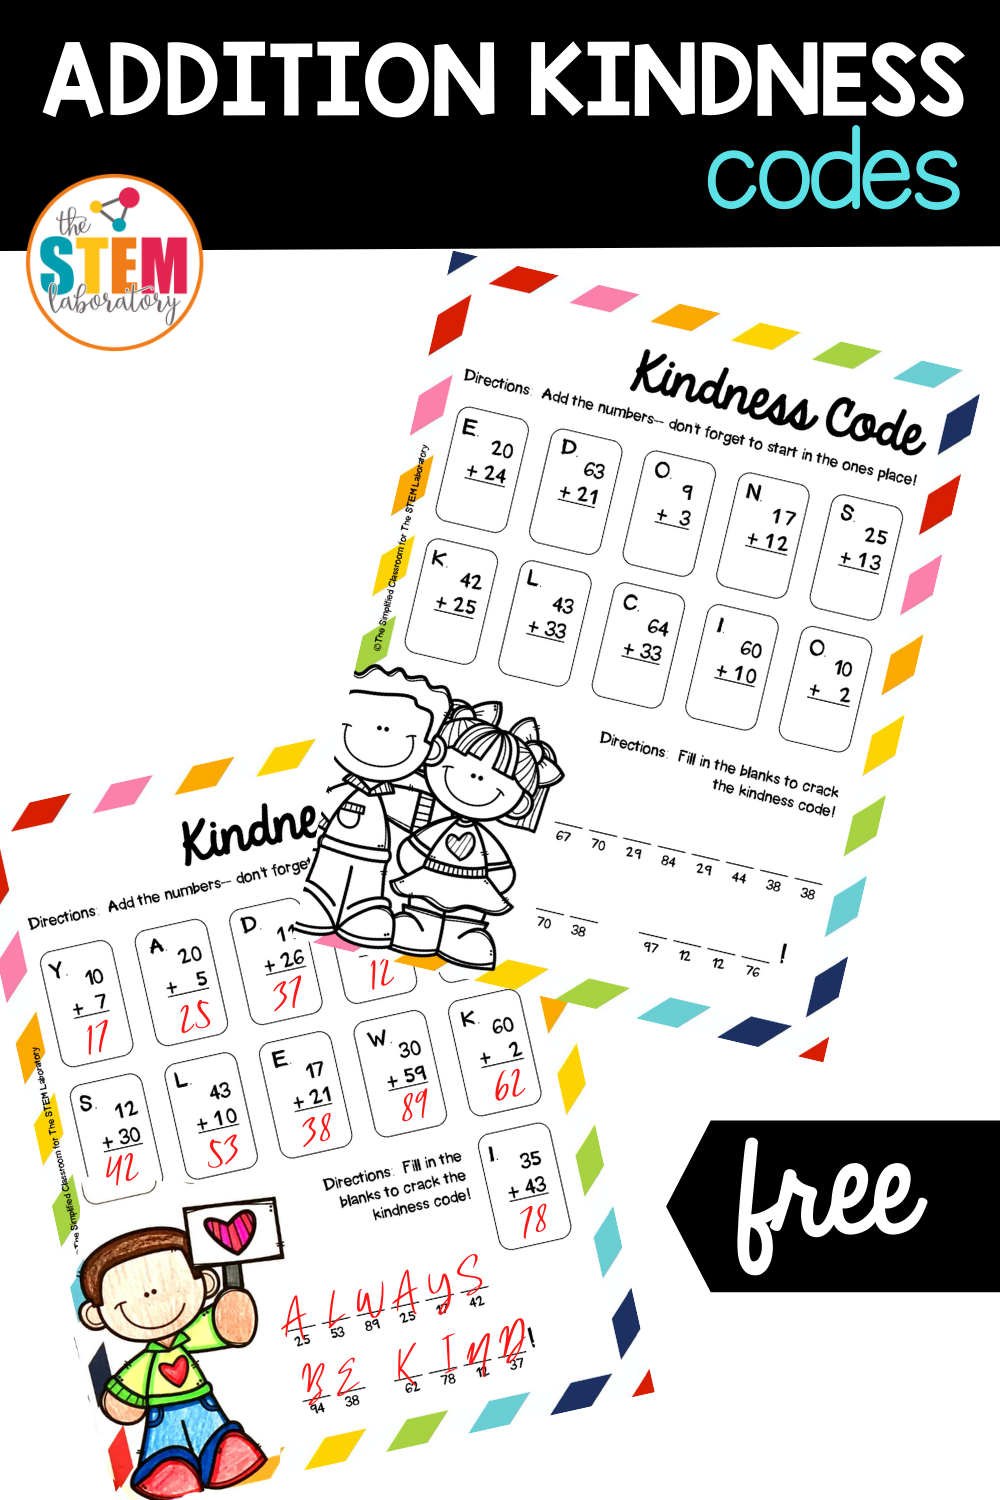 Addition Kindness Codes Activity